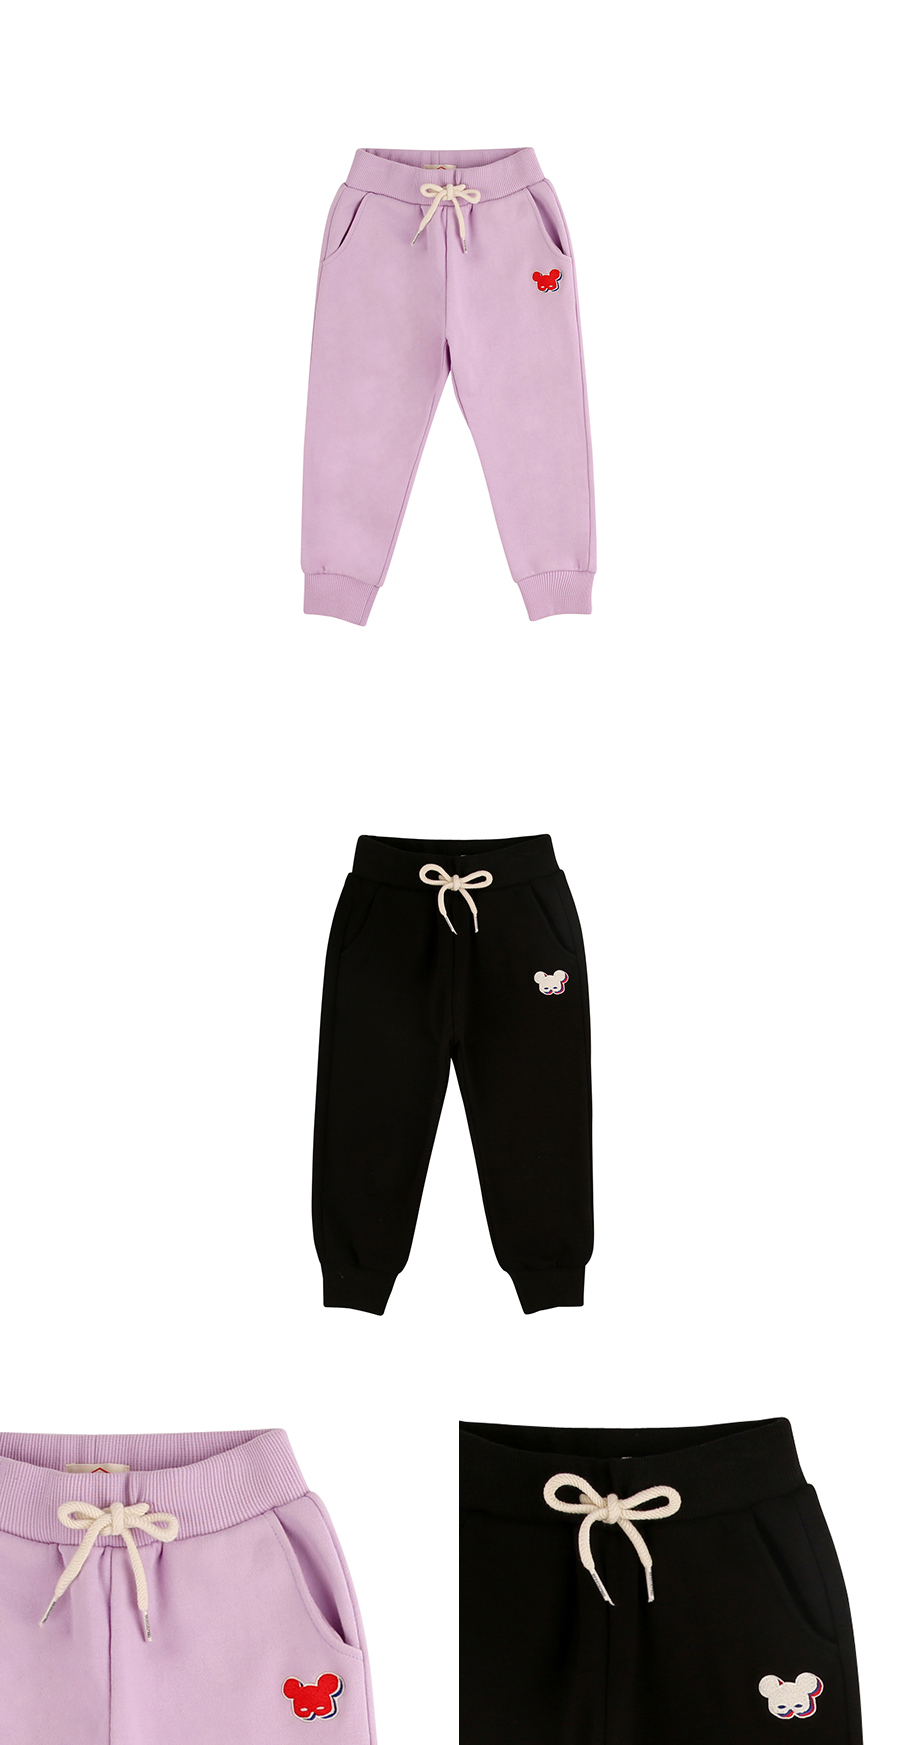 Basic shadow pino sweatpants 상세 이미지